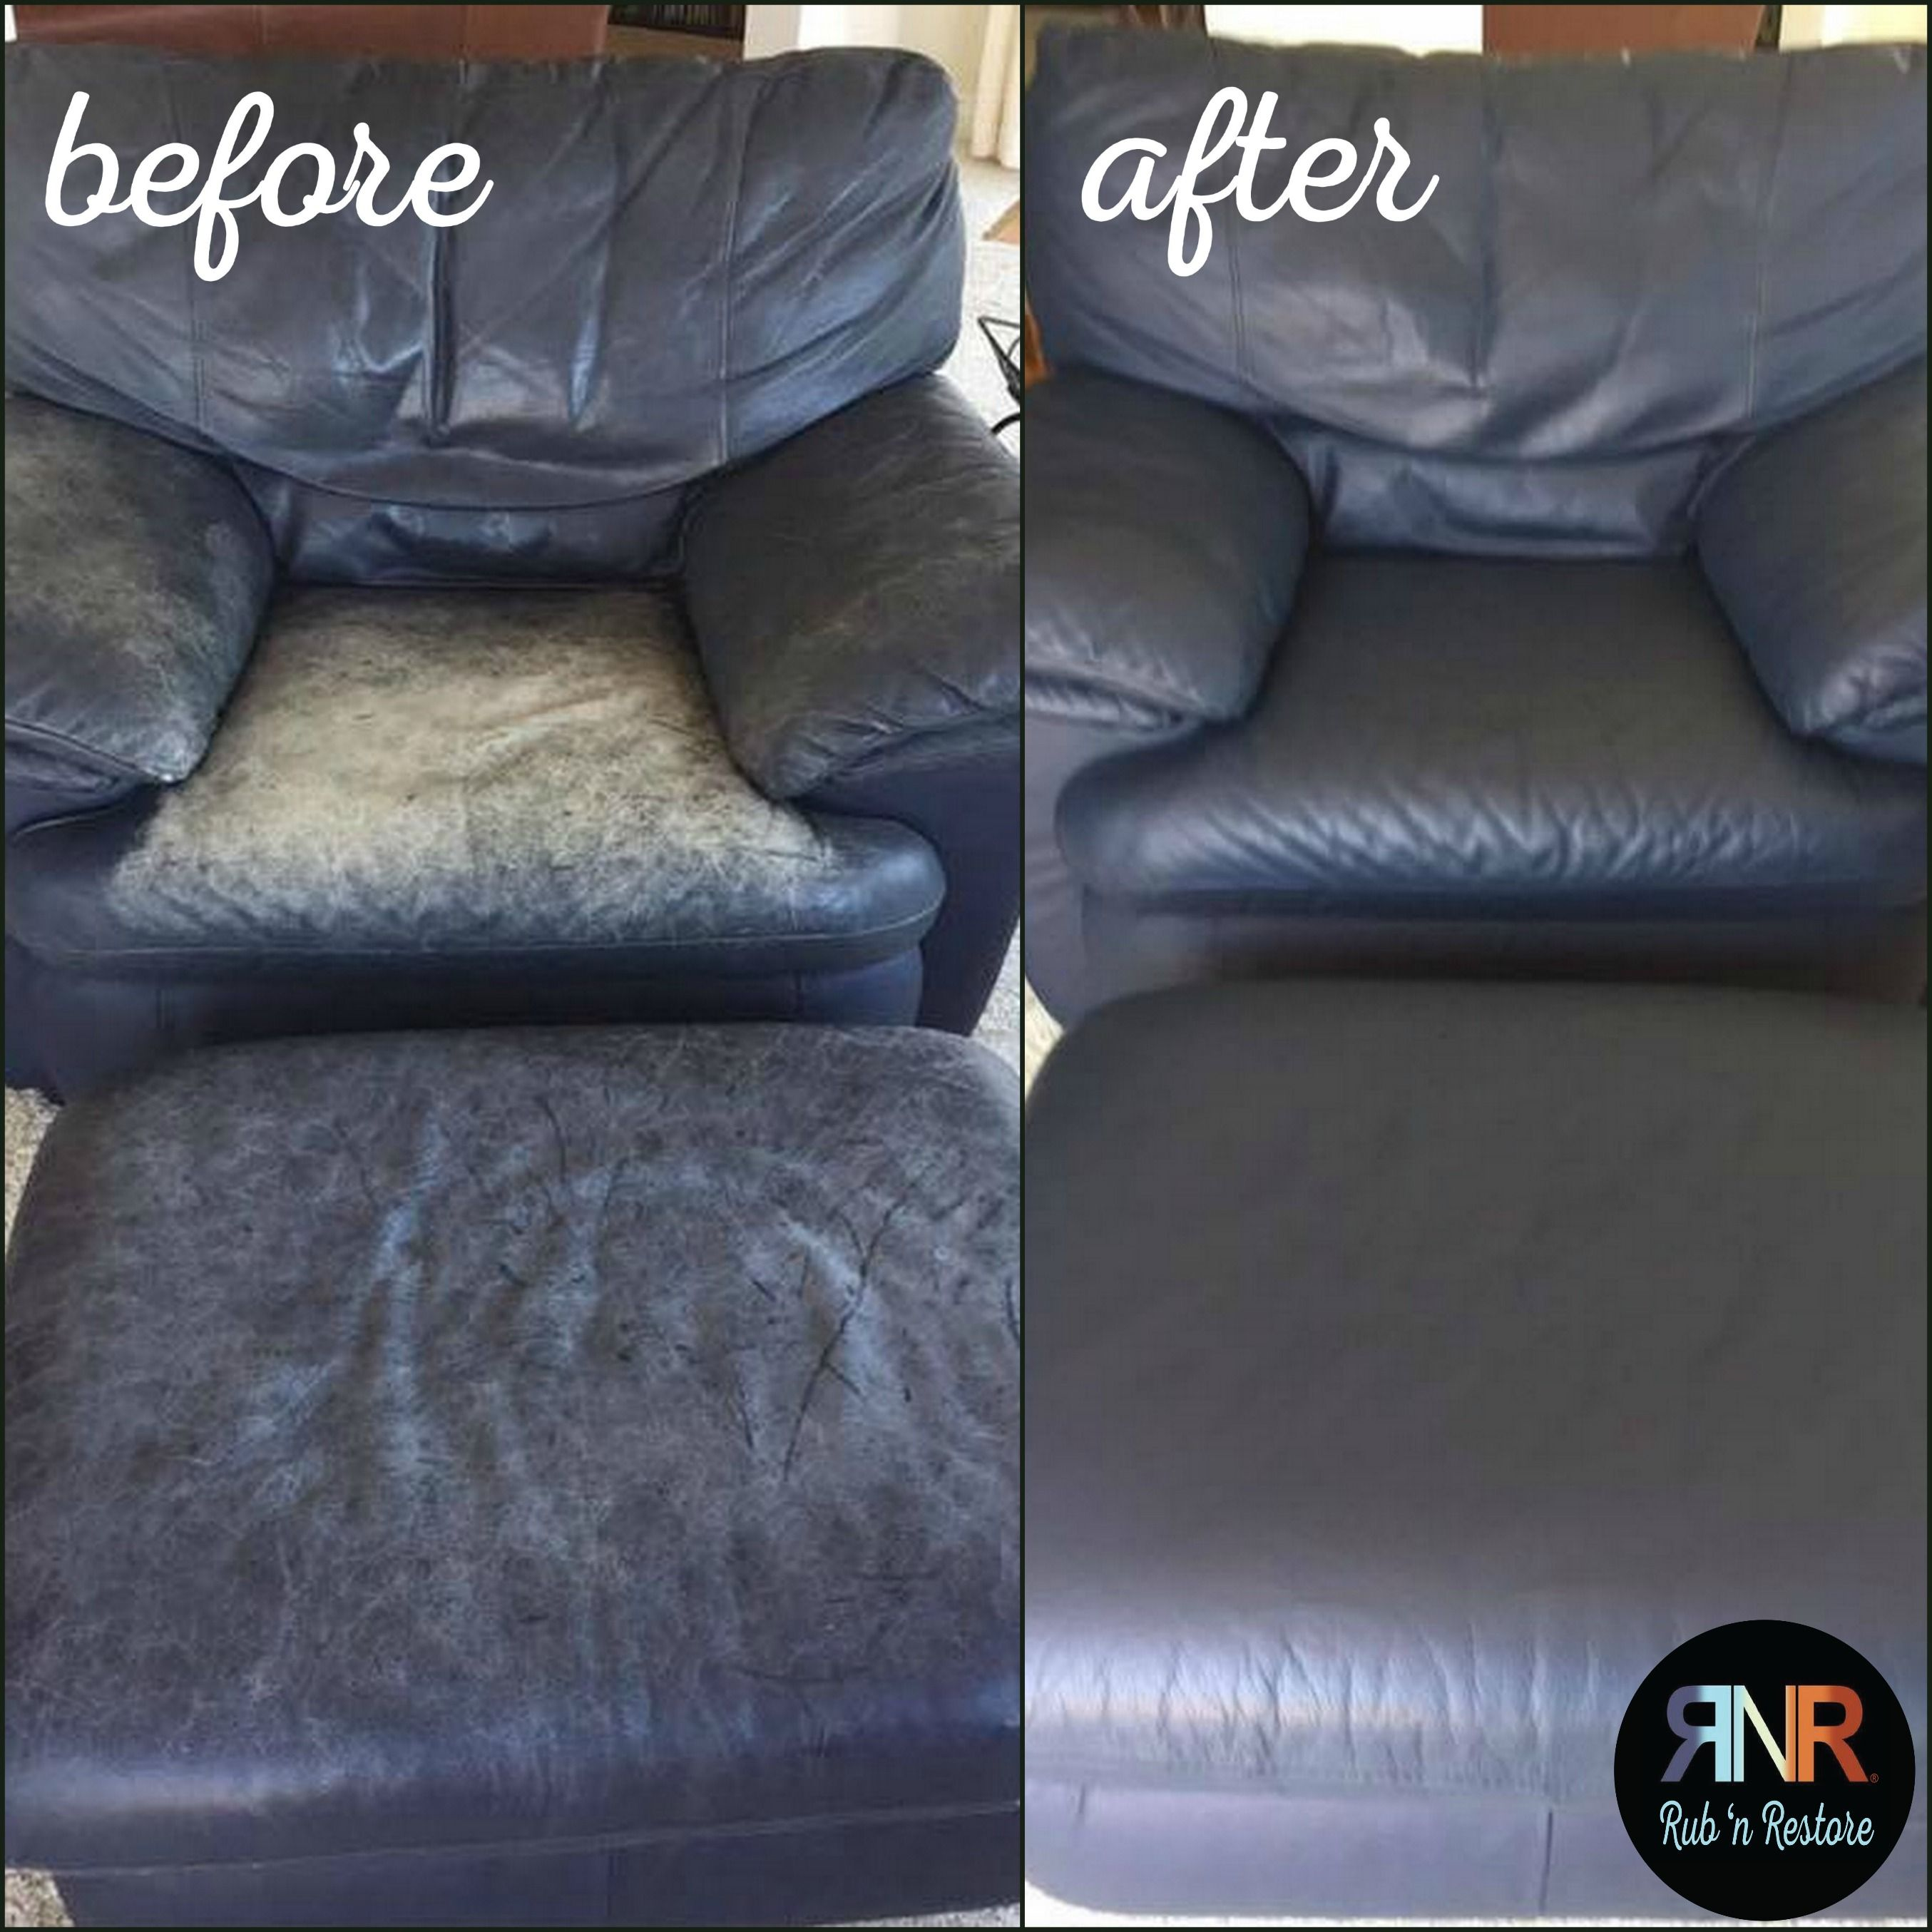 Midnight Blue Royal Blue Navy Blue Vinyl Leather Dye For Upholstery White Leather Couch Leather Couch Repair Black Leather Couch